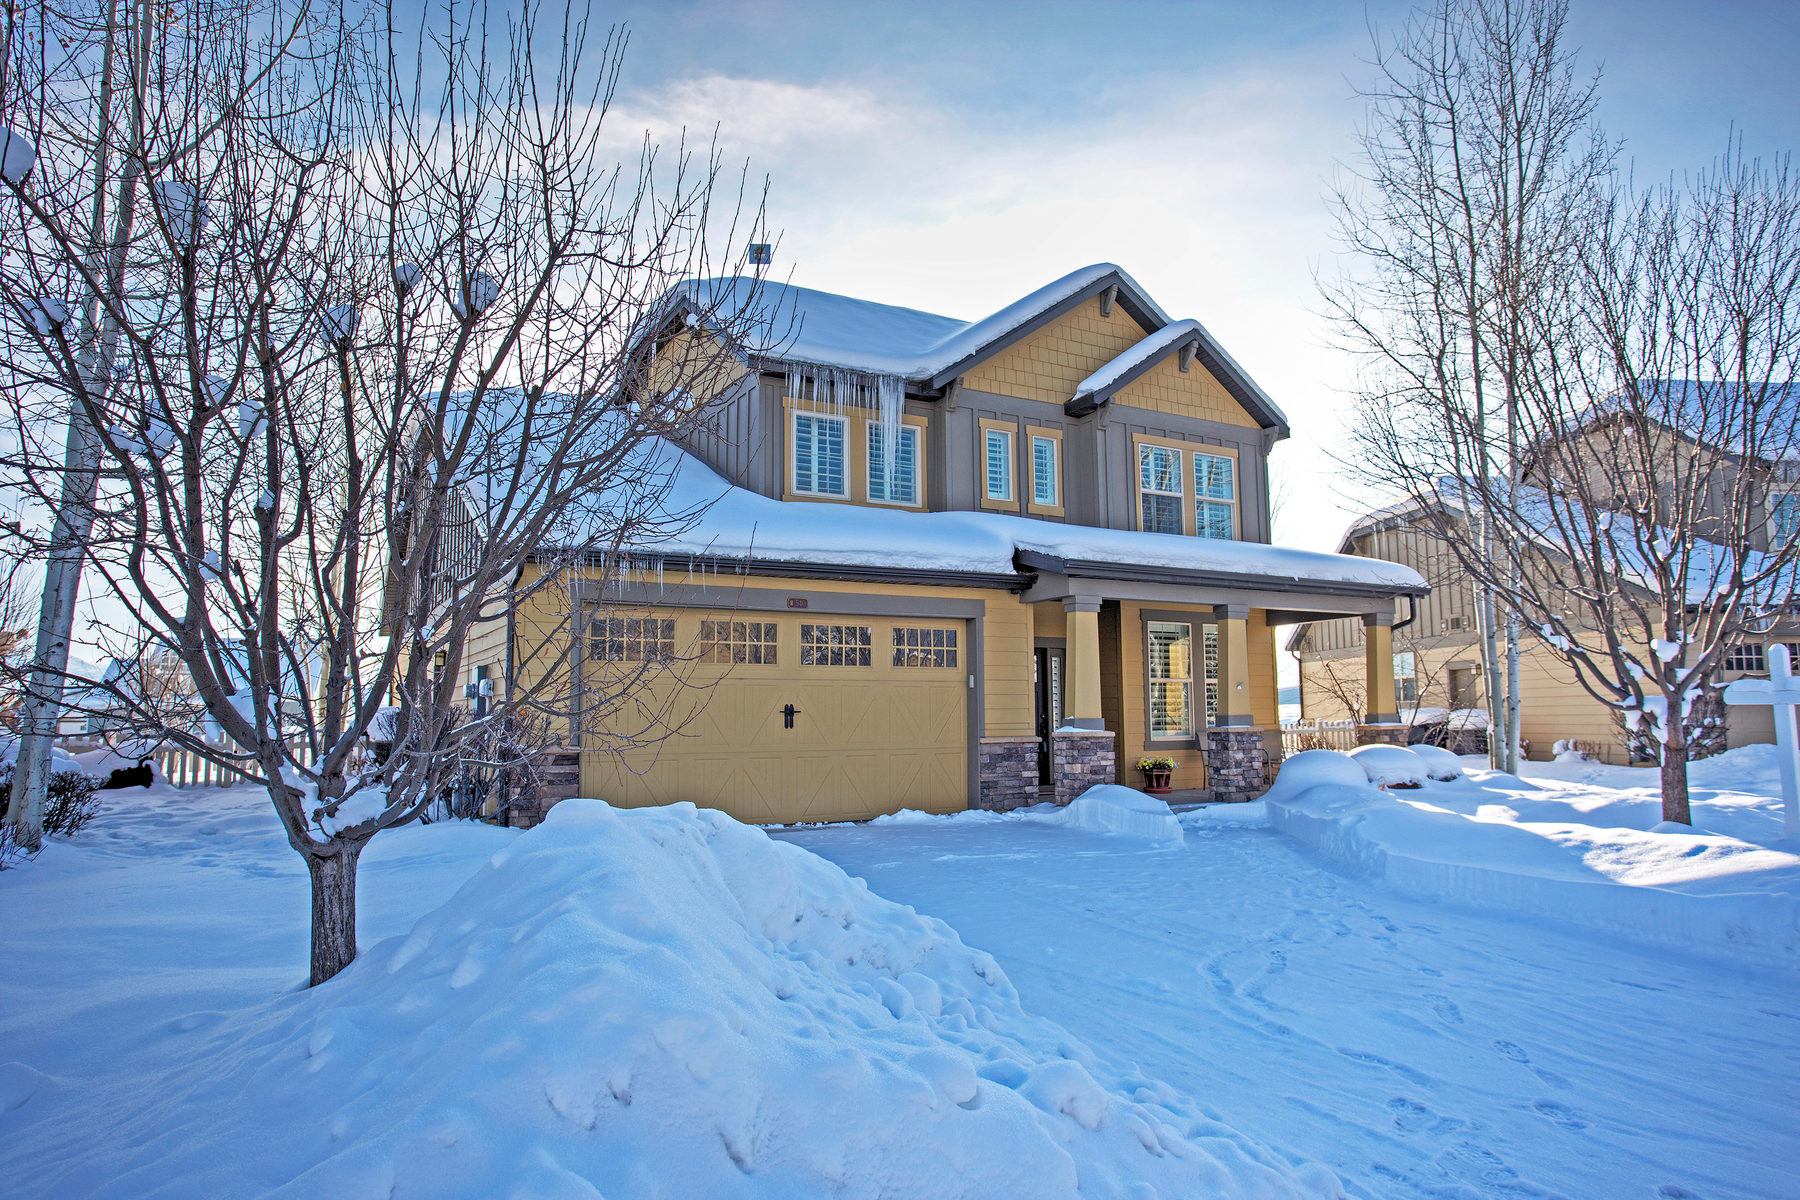 Single Family Home for Sale at Fantasitic Cottages at Dutch Fields Home 540 E Mission Dr Midway, Utah 84049 United States